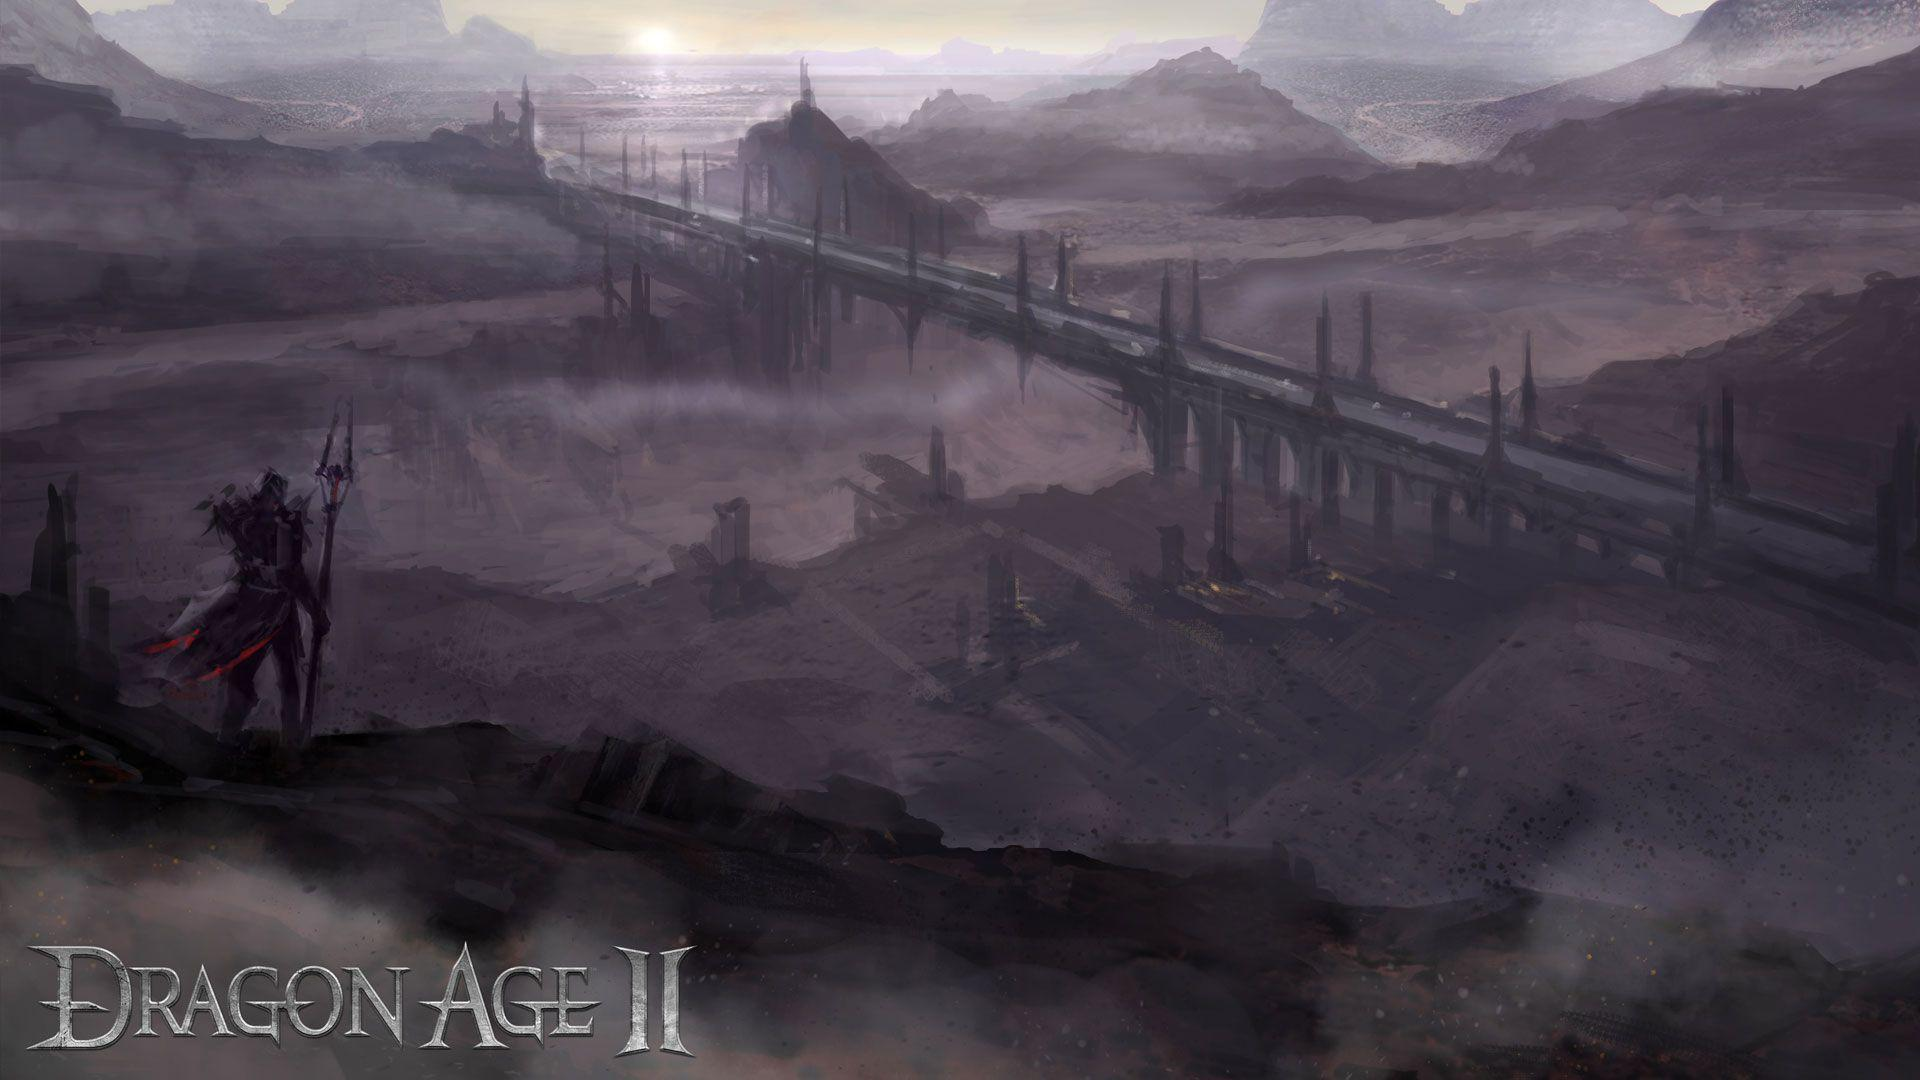 Dragon Age Ii Wallpapers 220 HD Wallpapers